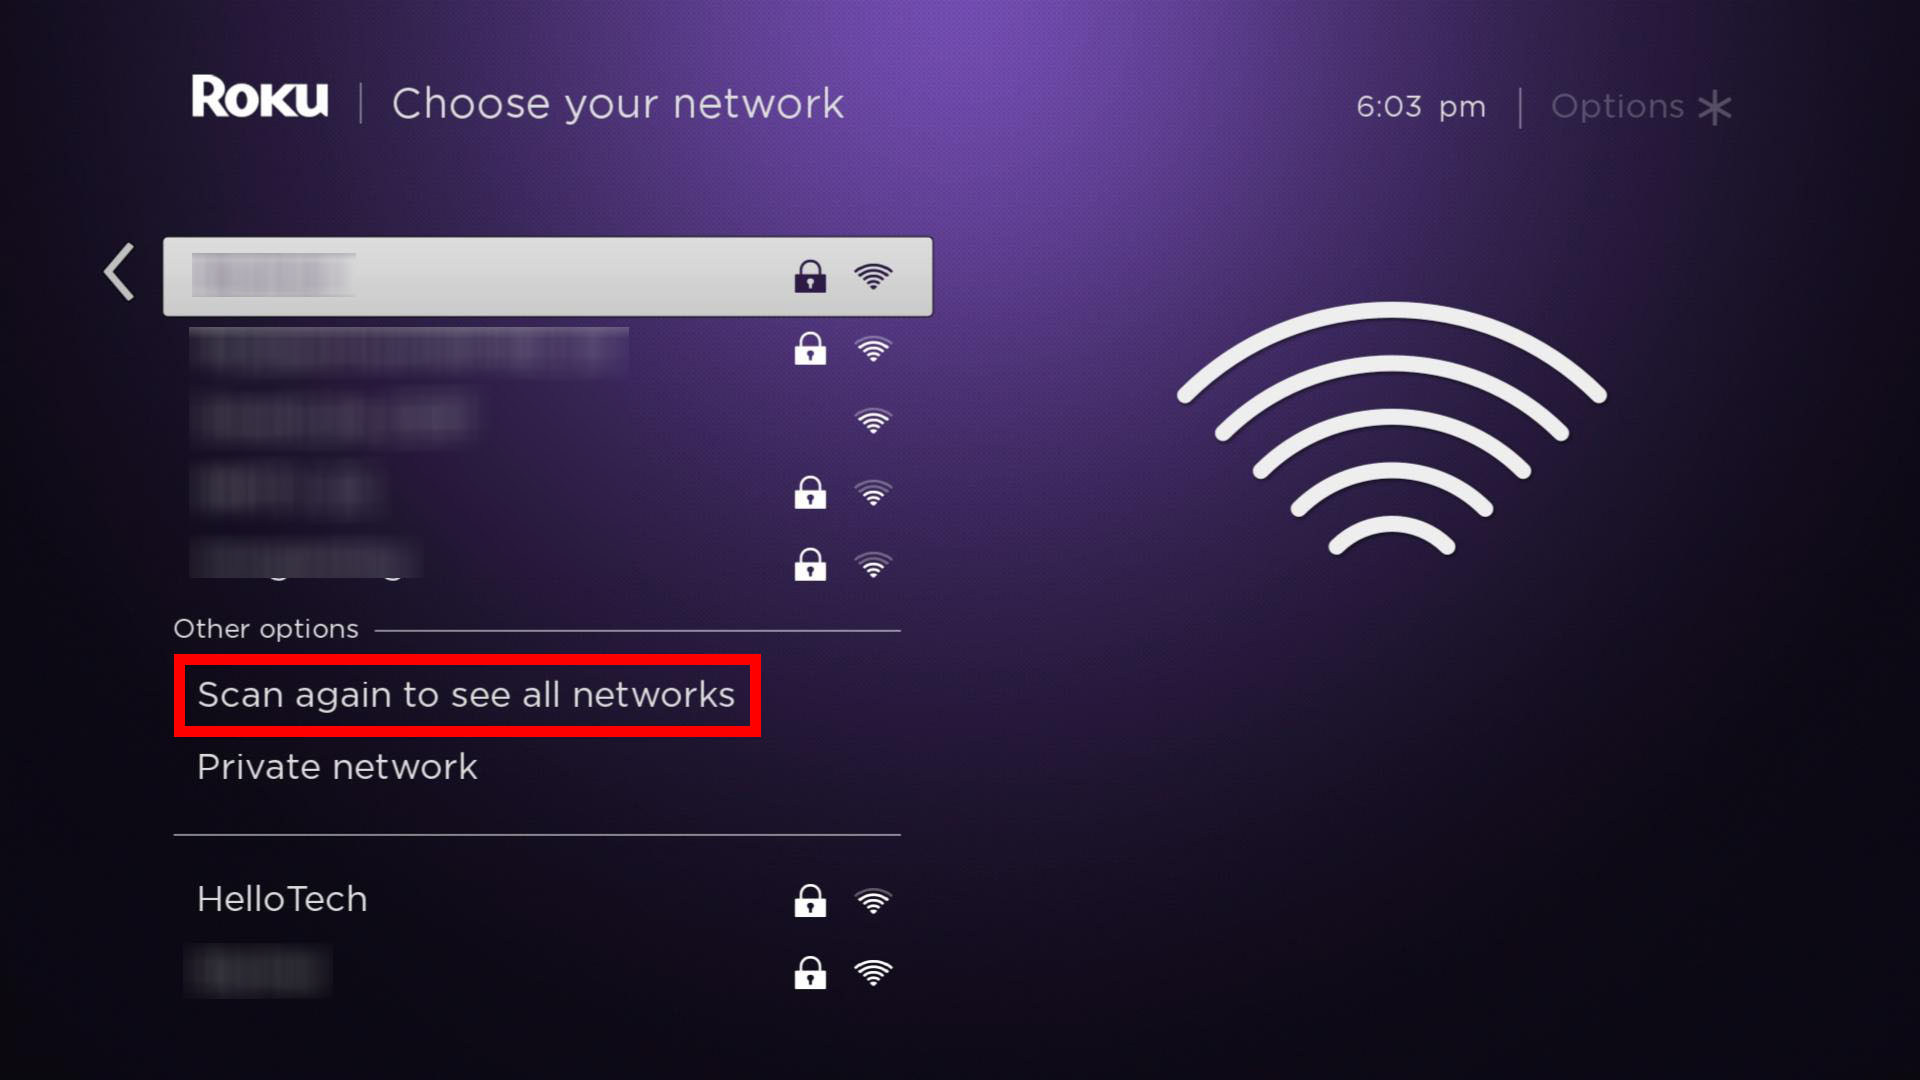 how to connect roku to mobile hotspot